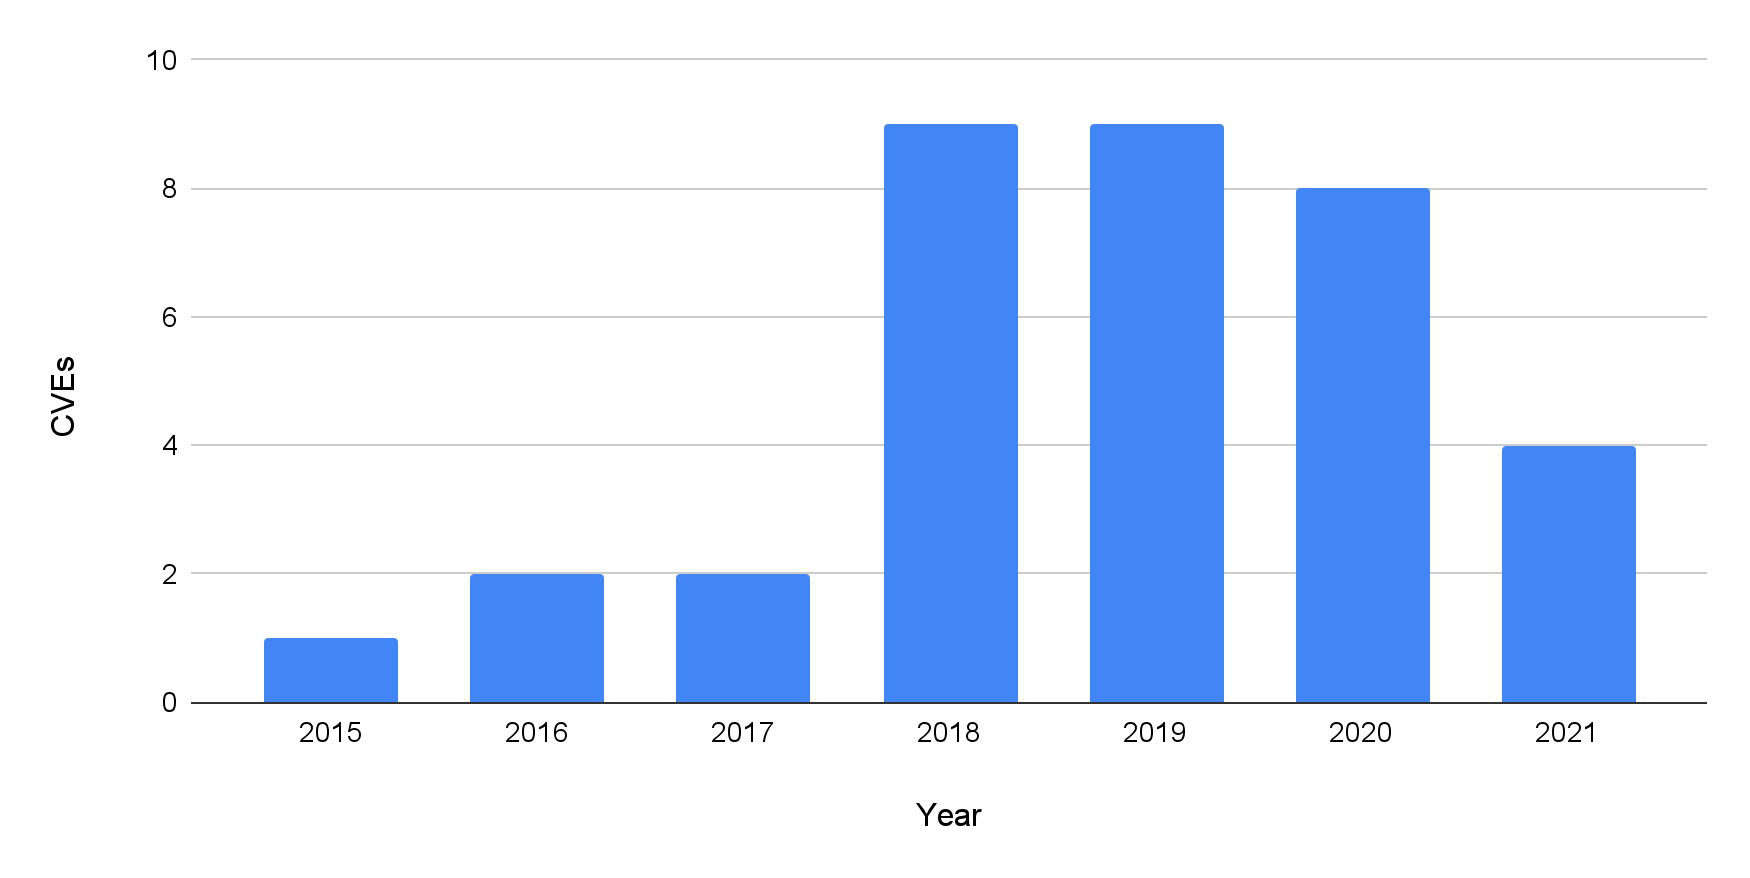 The chart tracks the number of CVEs related to DNS rebinding by year. Since 2015, there has been at least one every year. The number of related CVEs has increased significantly since 2018.